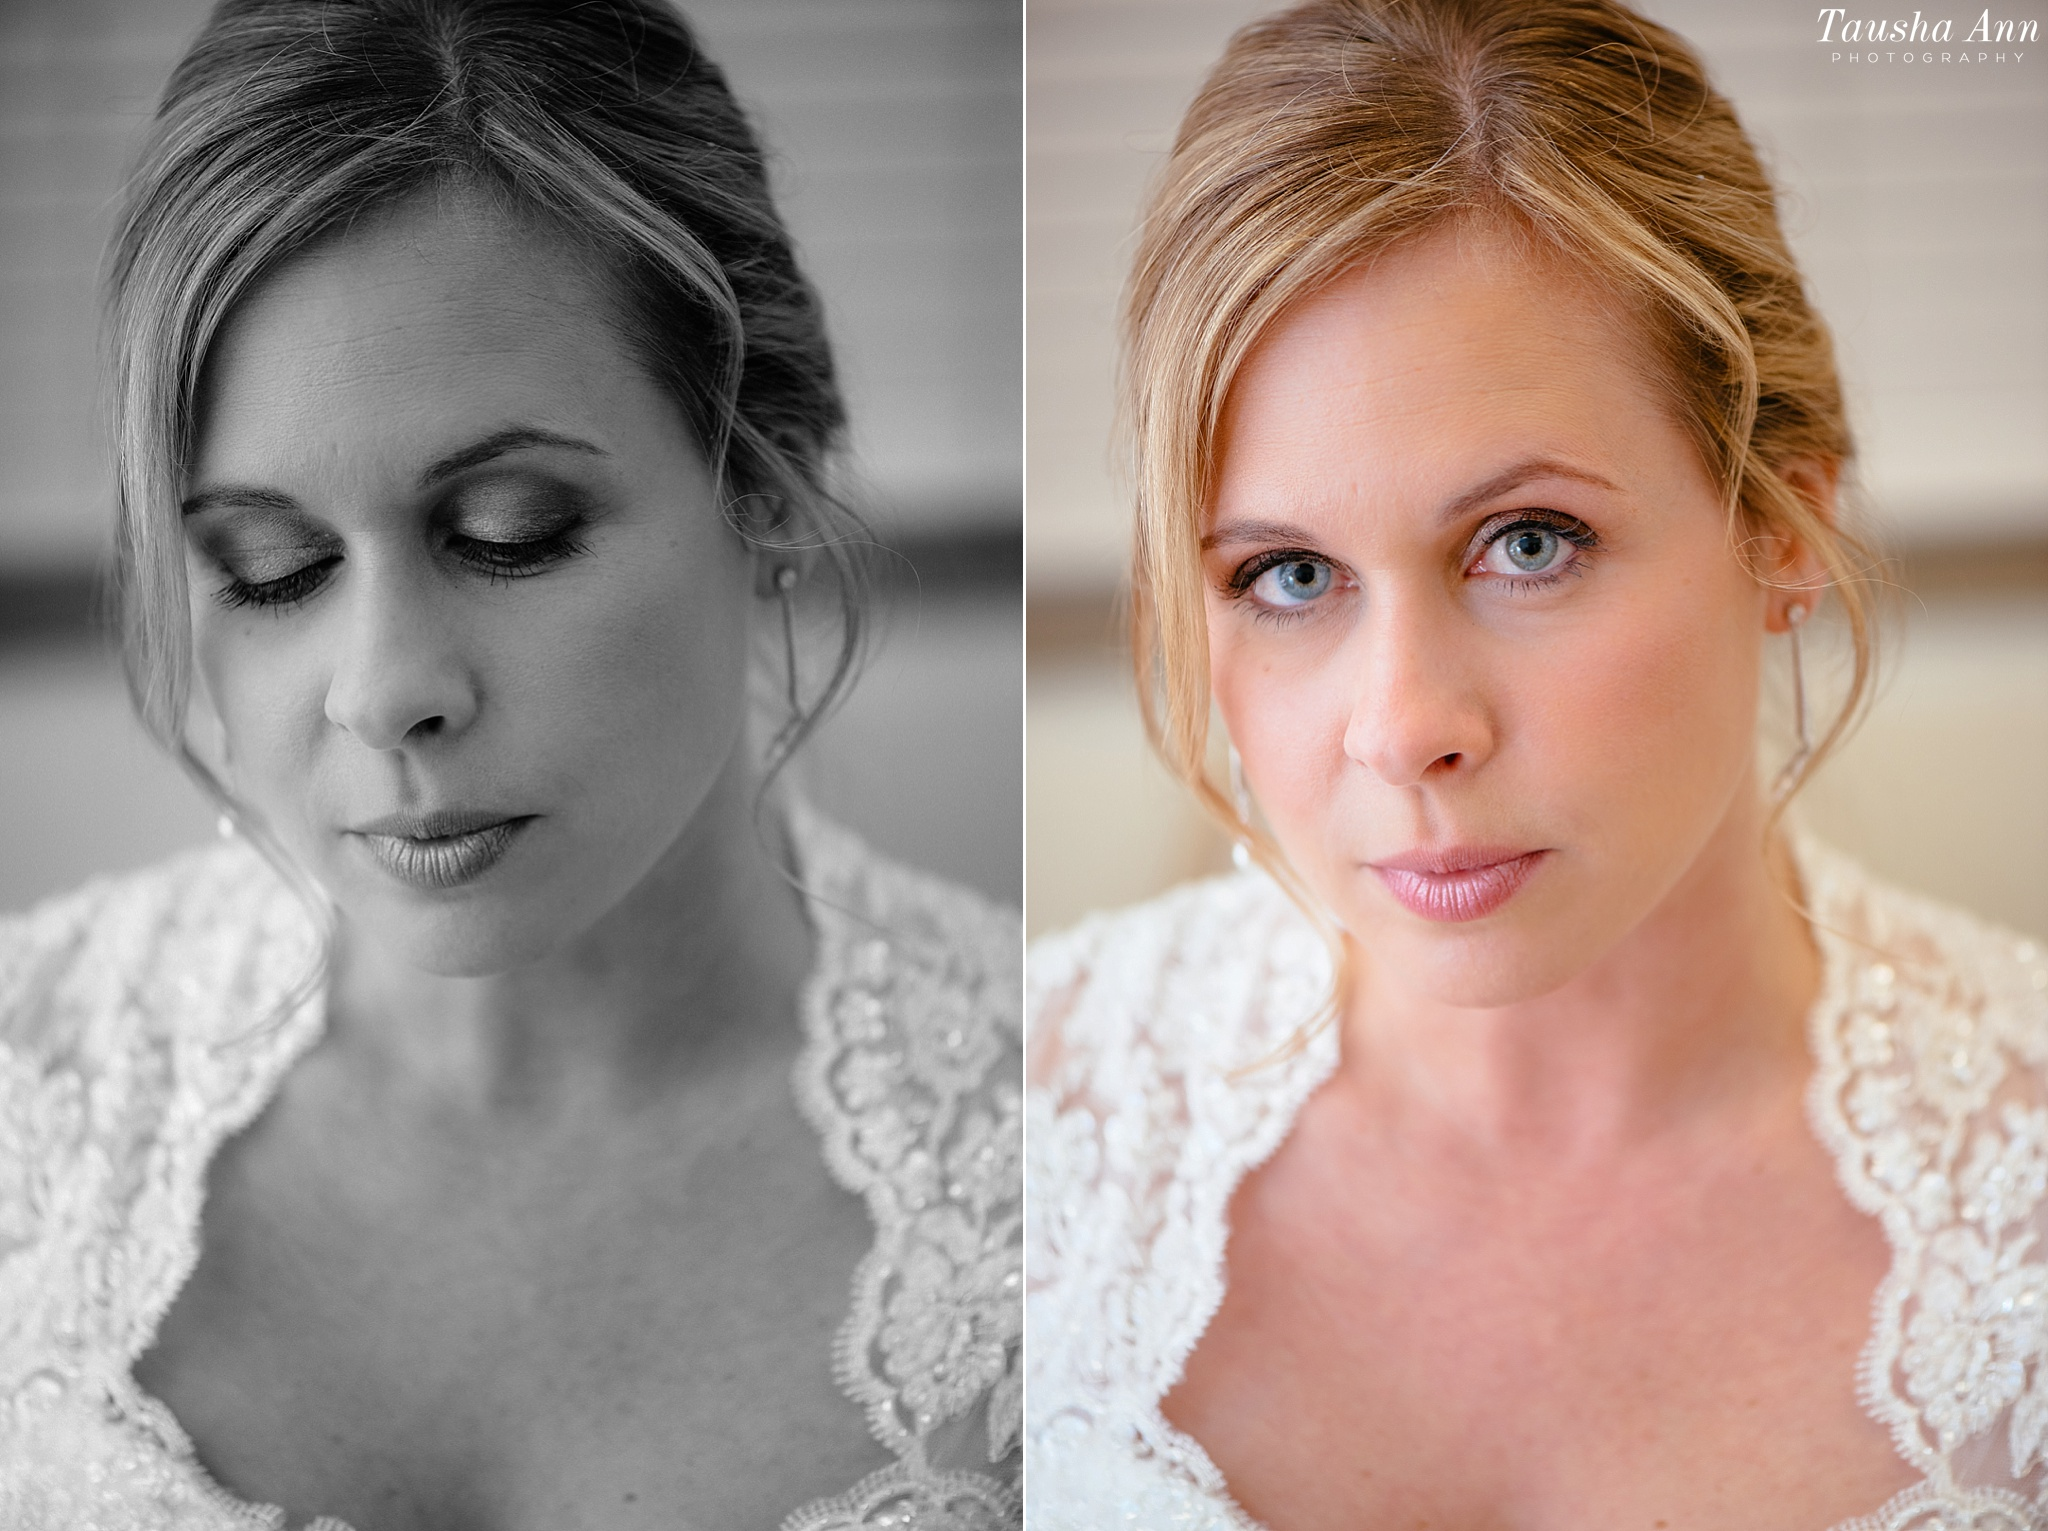 Black and White portrait of Beautiful Bride - lace dress.